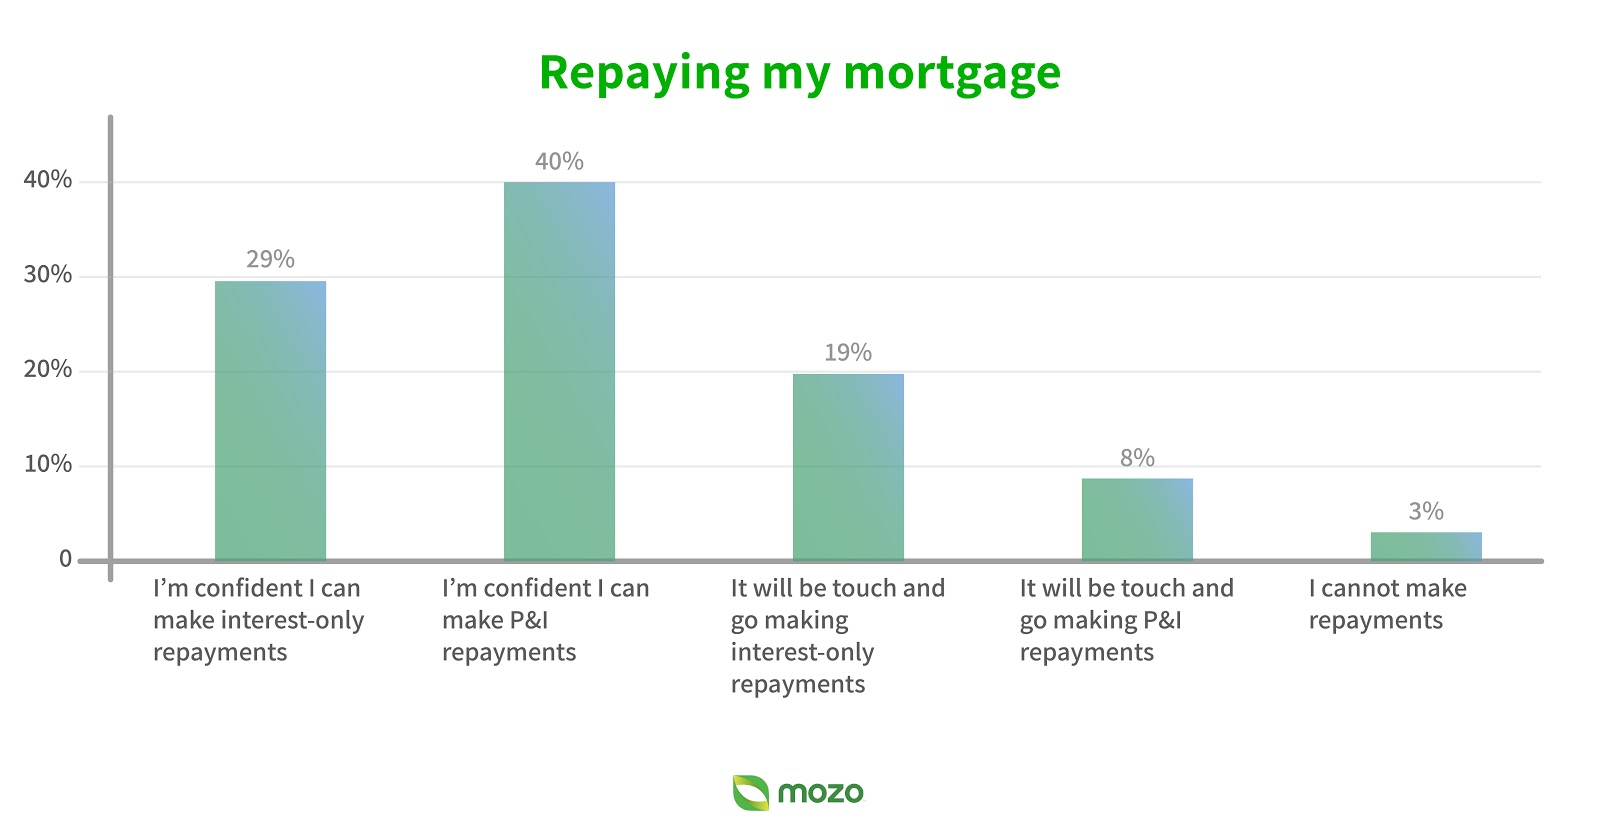 repaying-my-mortgage-graph